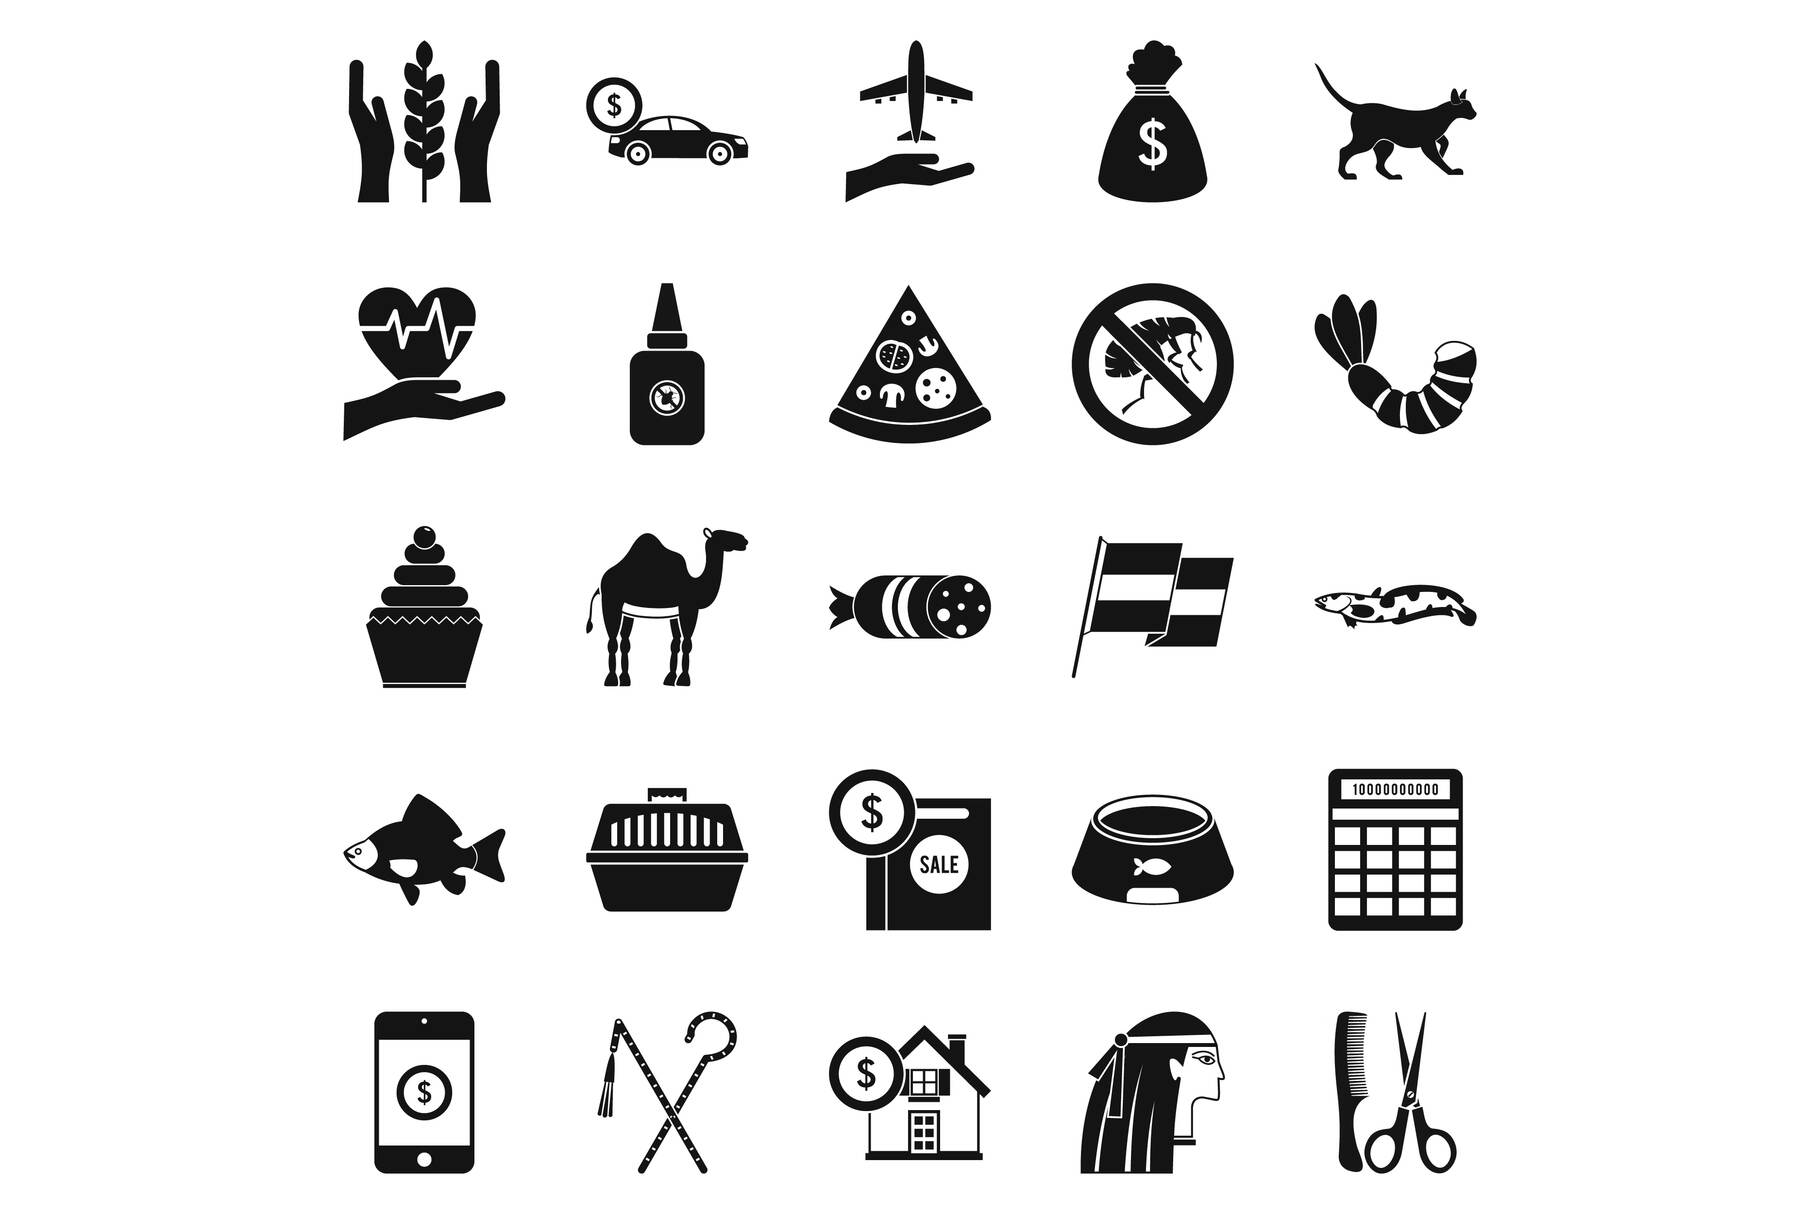 Egypt icons set, simple style example image 1